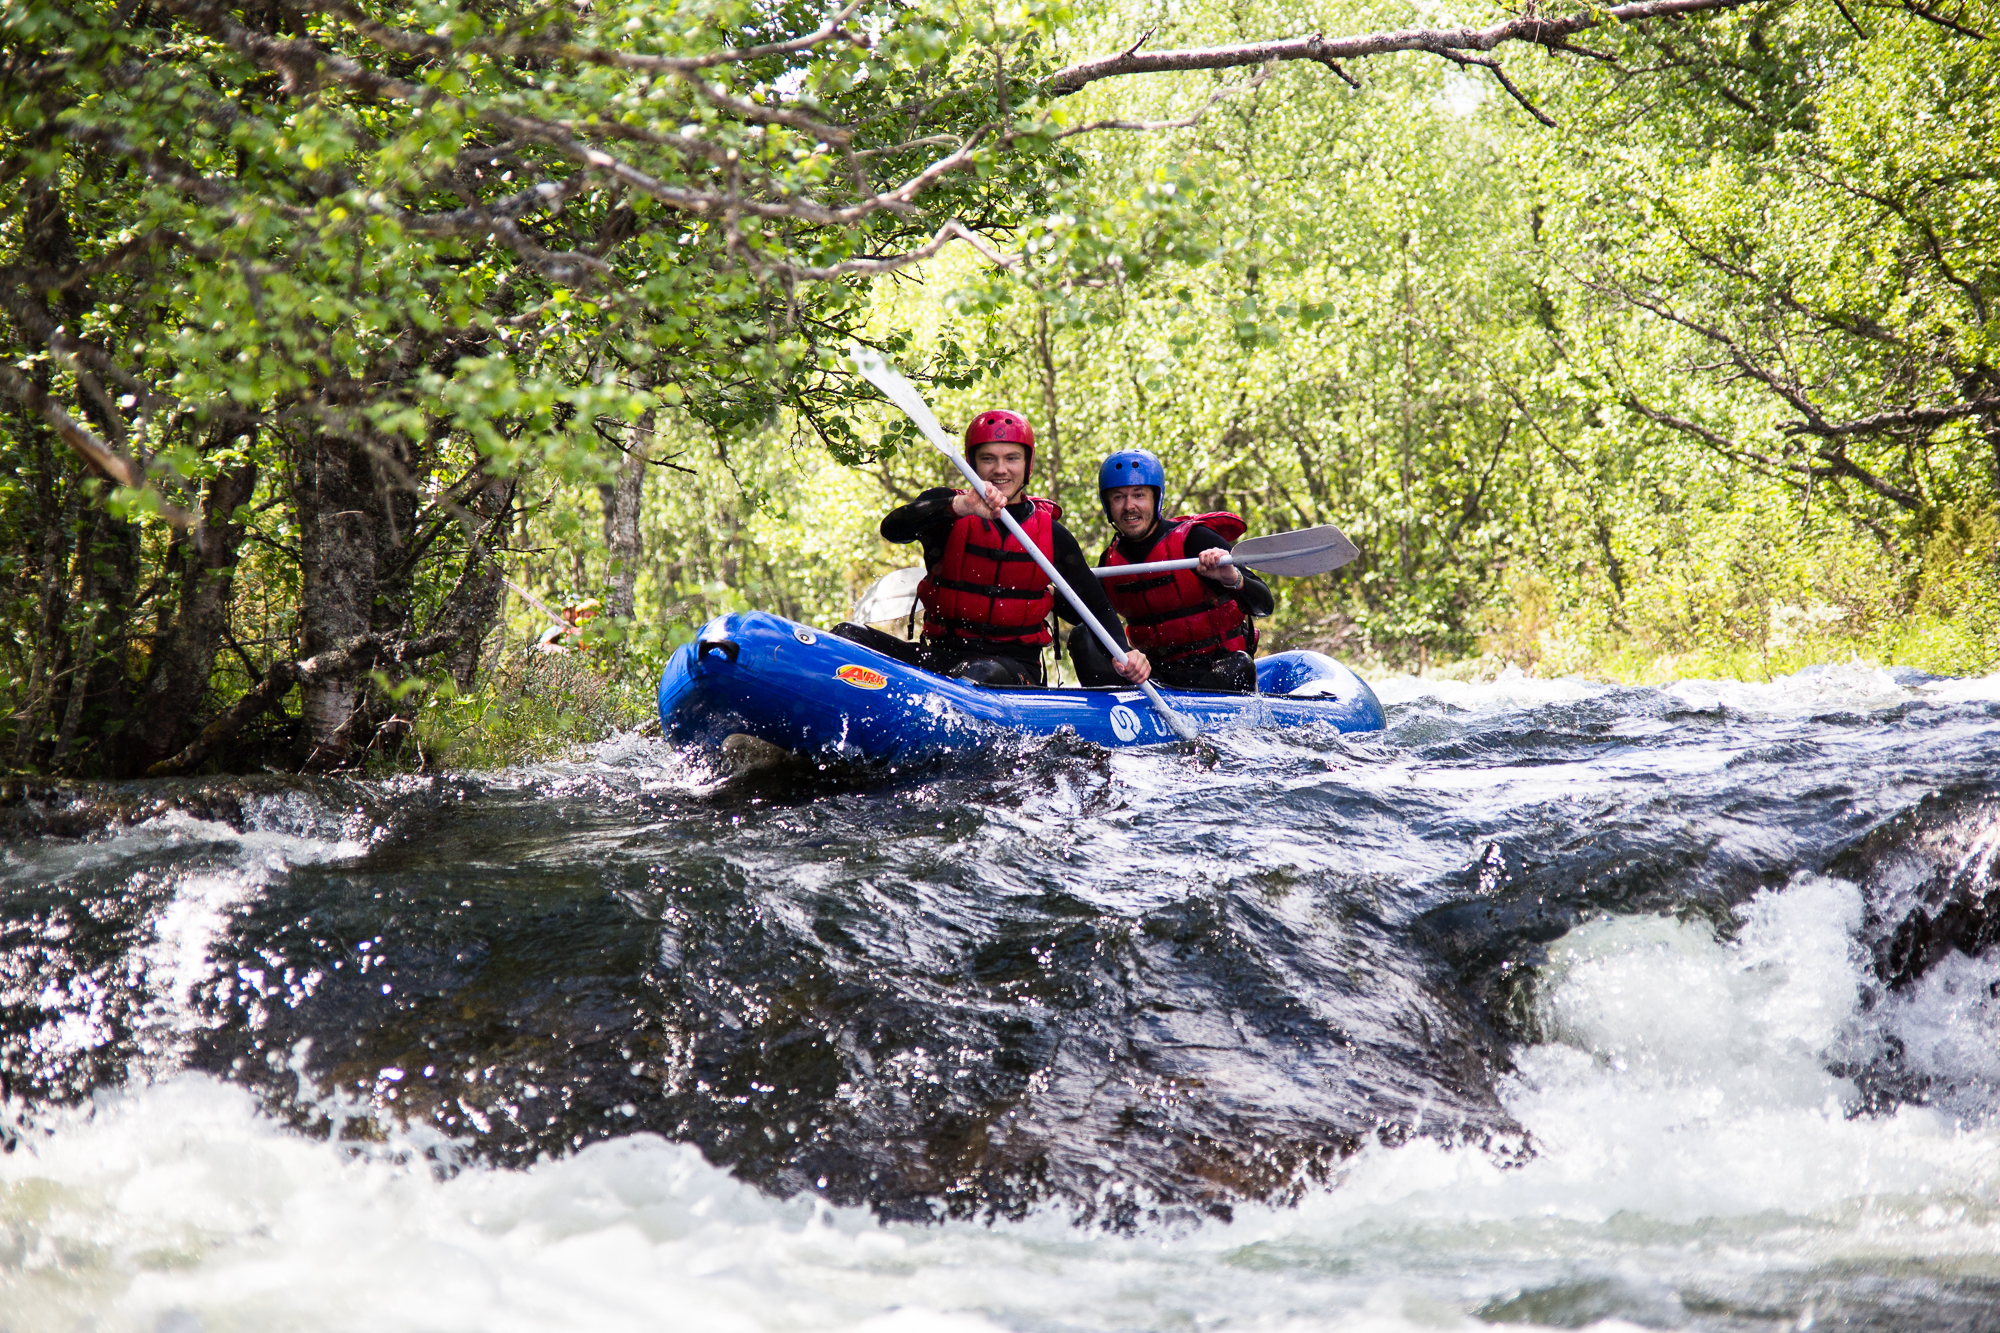 rafting-serious-fun-dagali-fjellpark-geilo-numedalslagen-hallingdal-sommer-2015 (65)